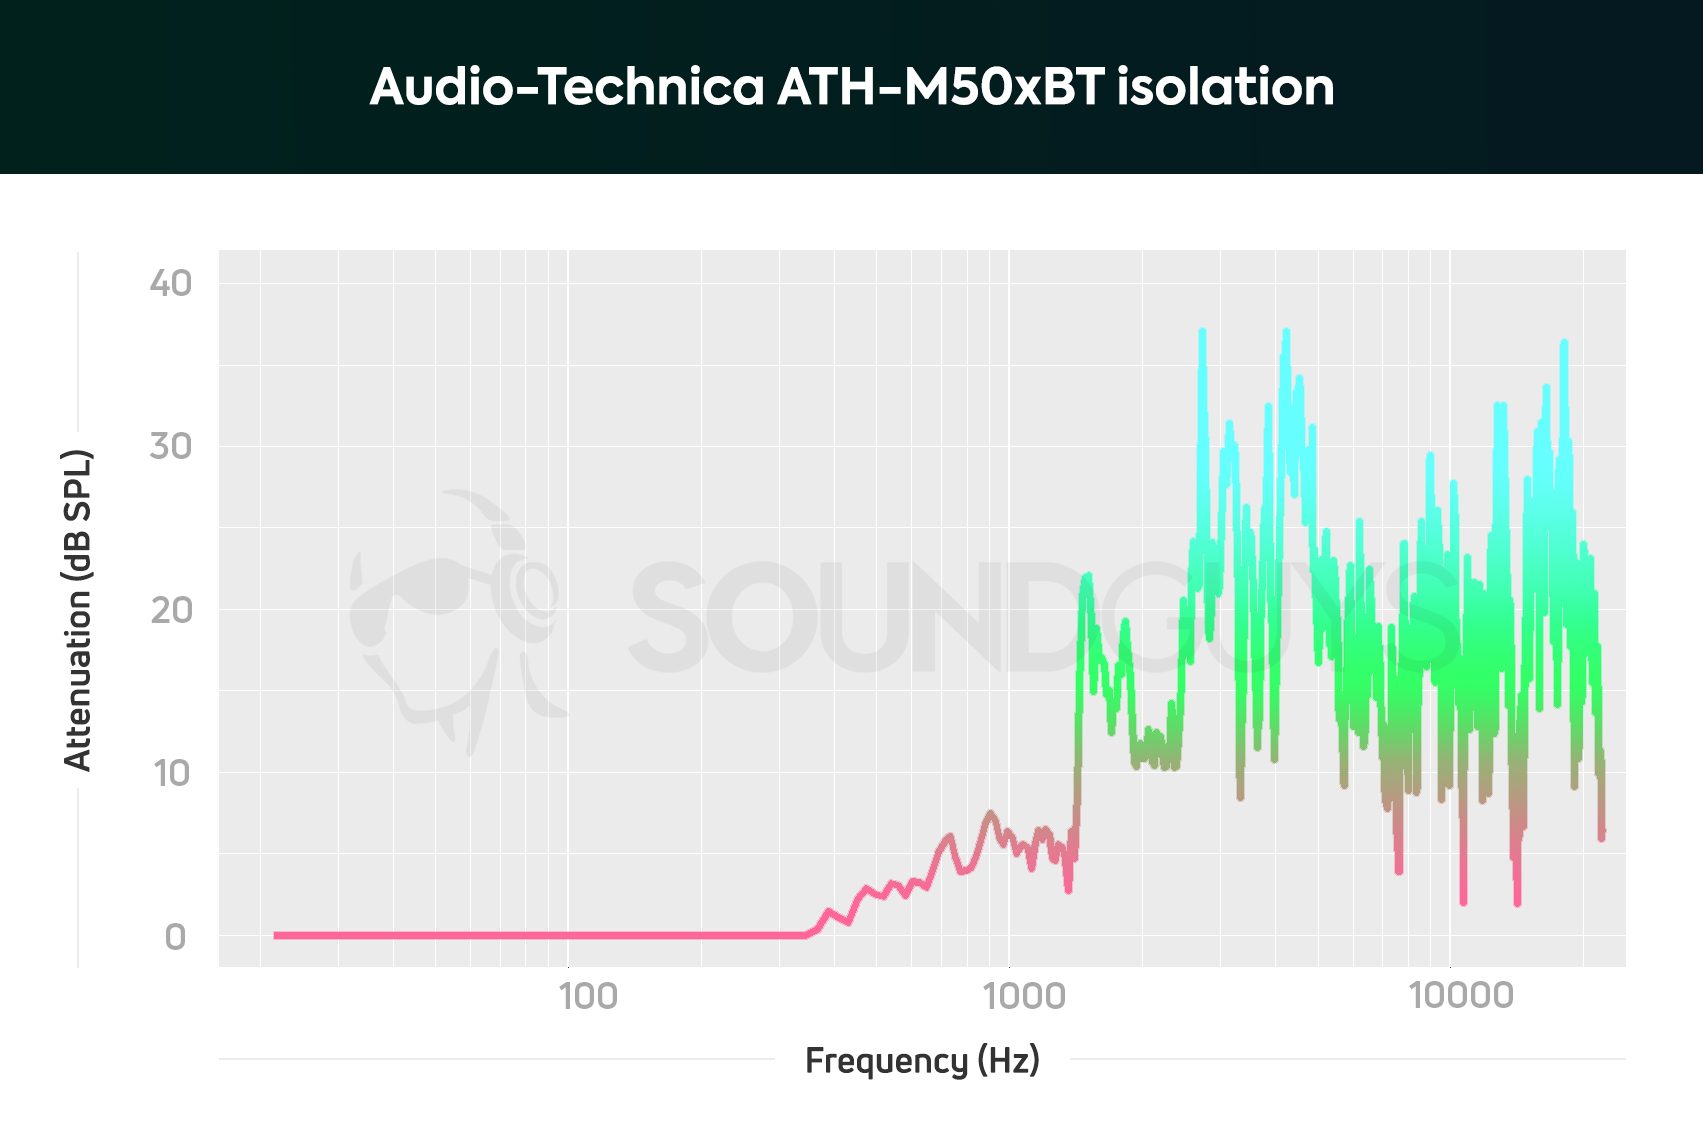 hight resolution of it s not surprising that the audio technica ath m50xbt don t isolate below 100hz but if you re in an airplane you may find that these headphones don t do